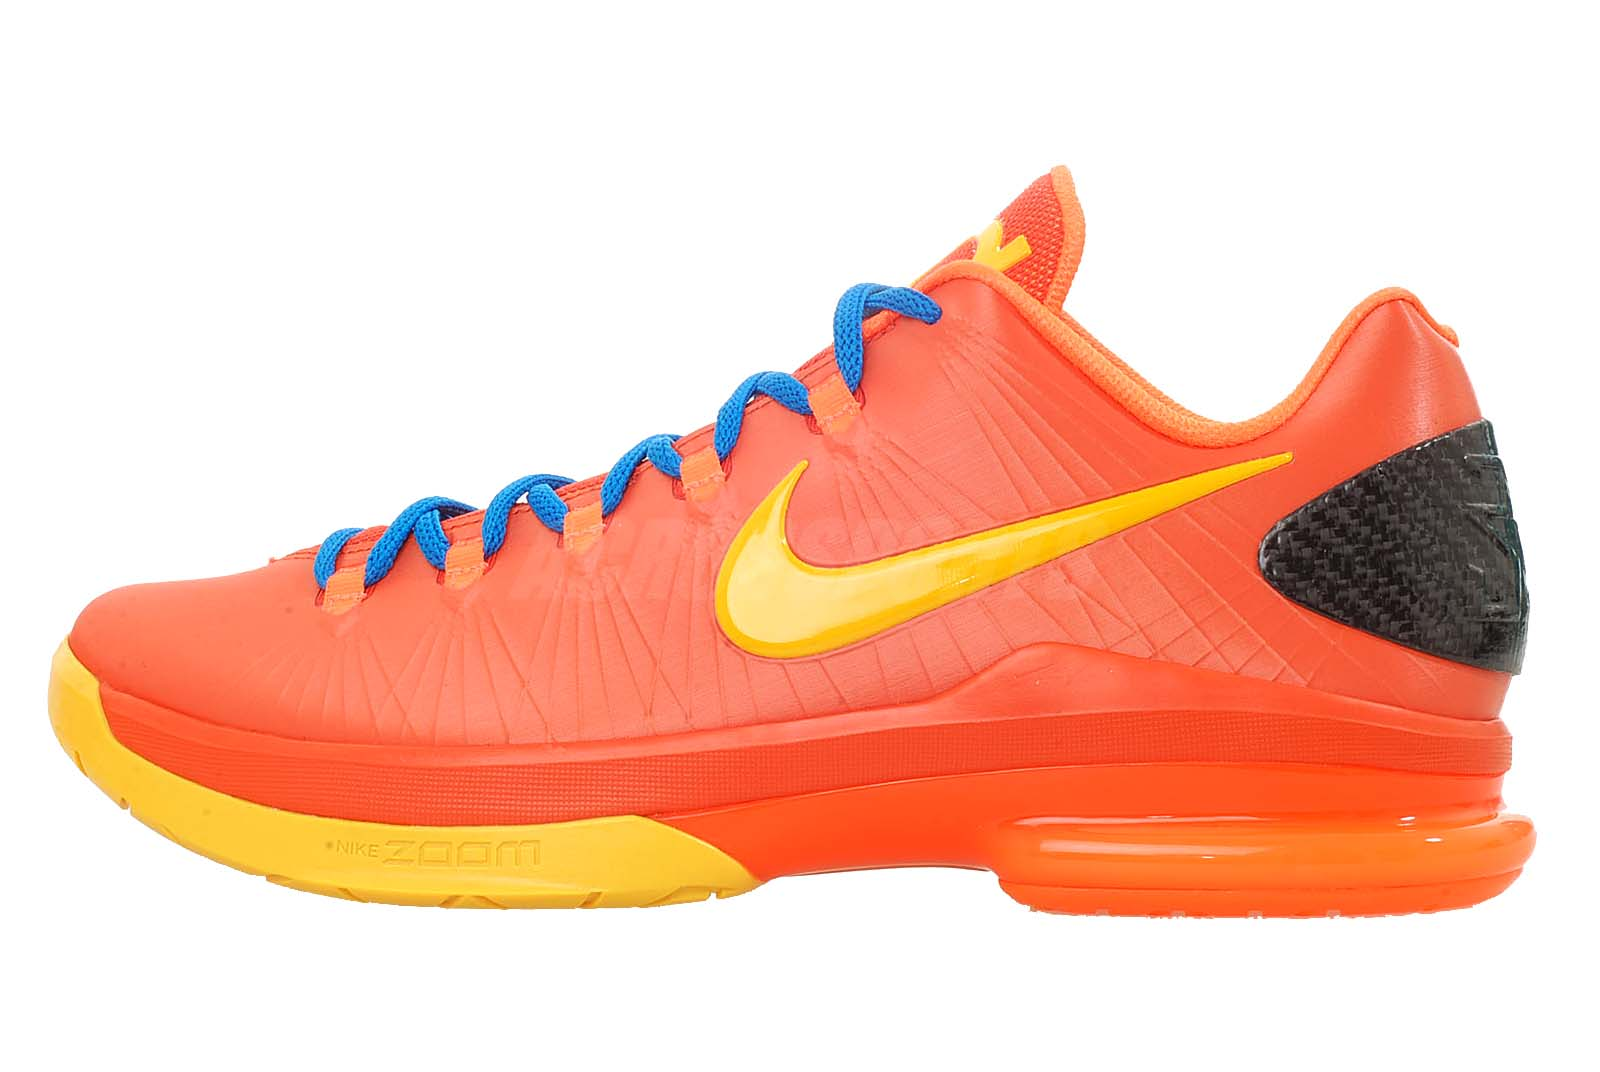 kevin durant shoes - HD1600×1072